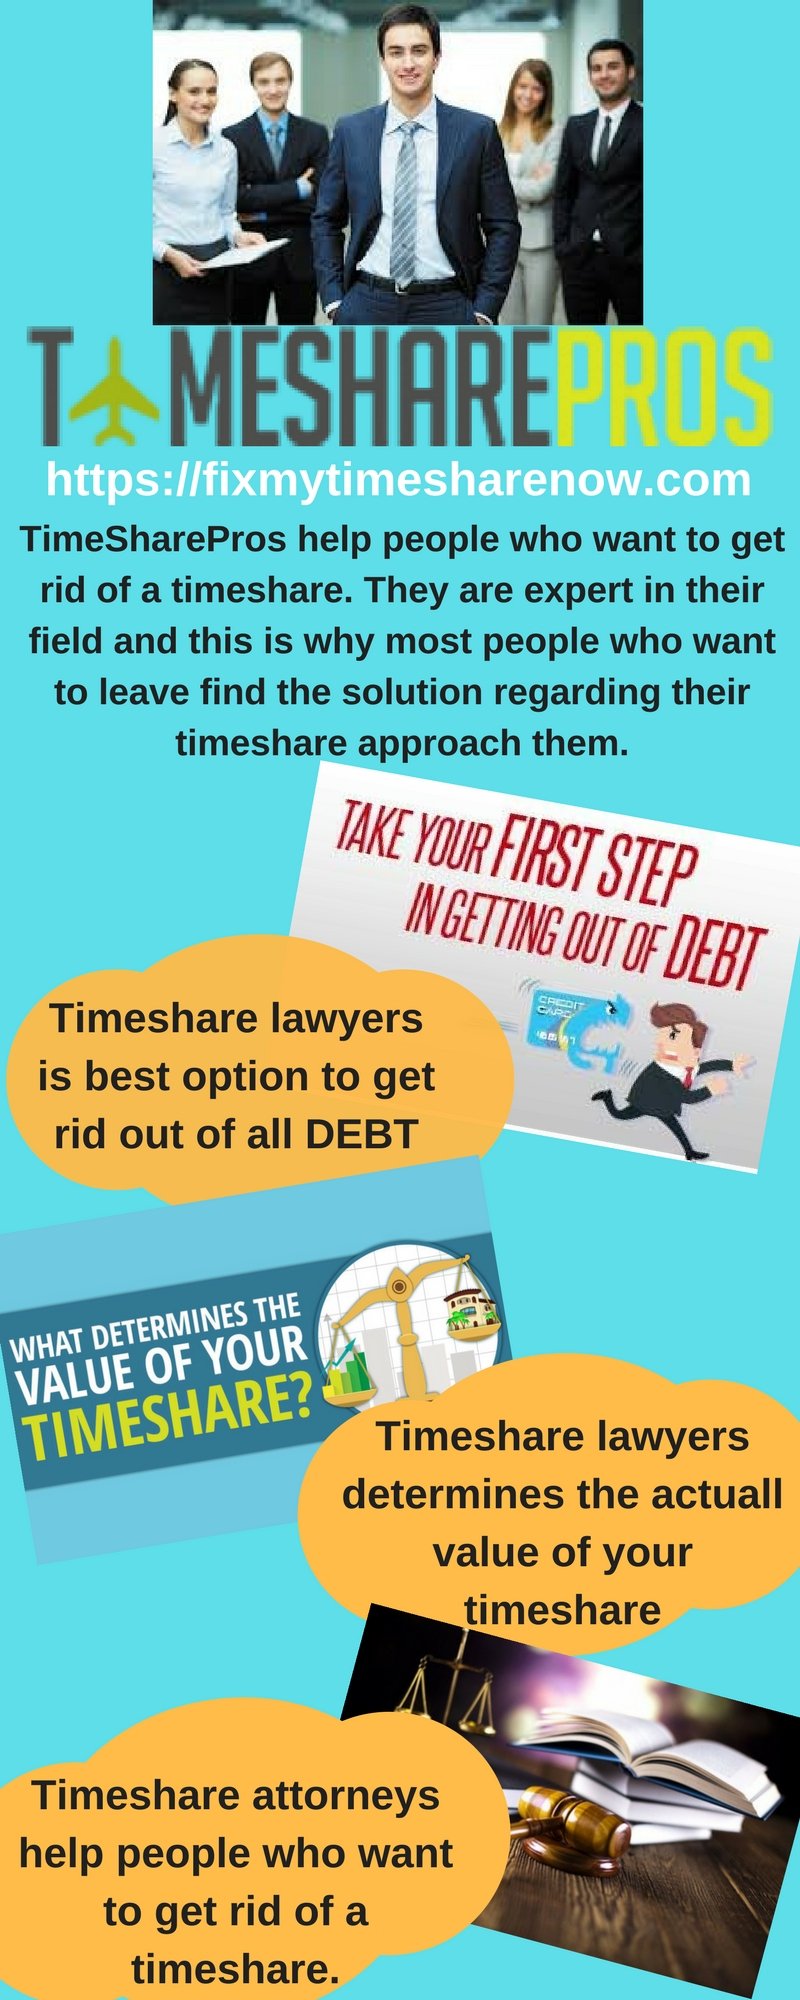 How To Get Rid Of Timeshare Legally